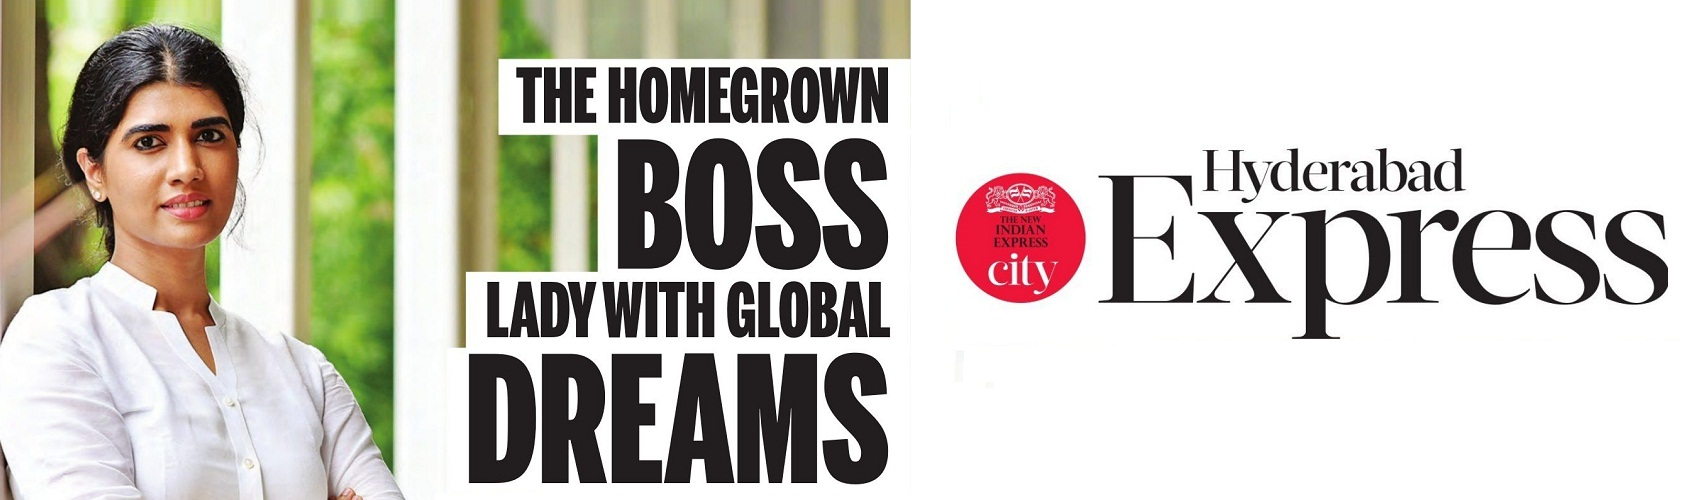 The Homegrown Boss Lady with Global Dreams.